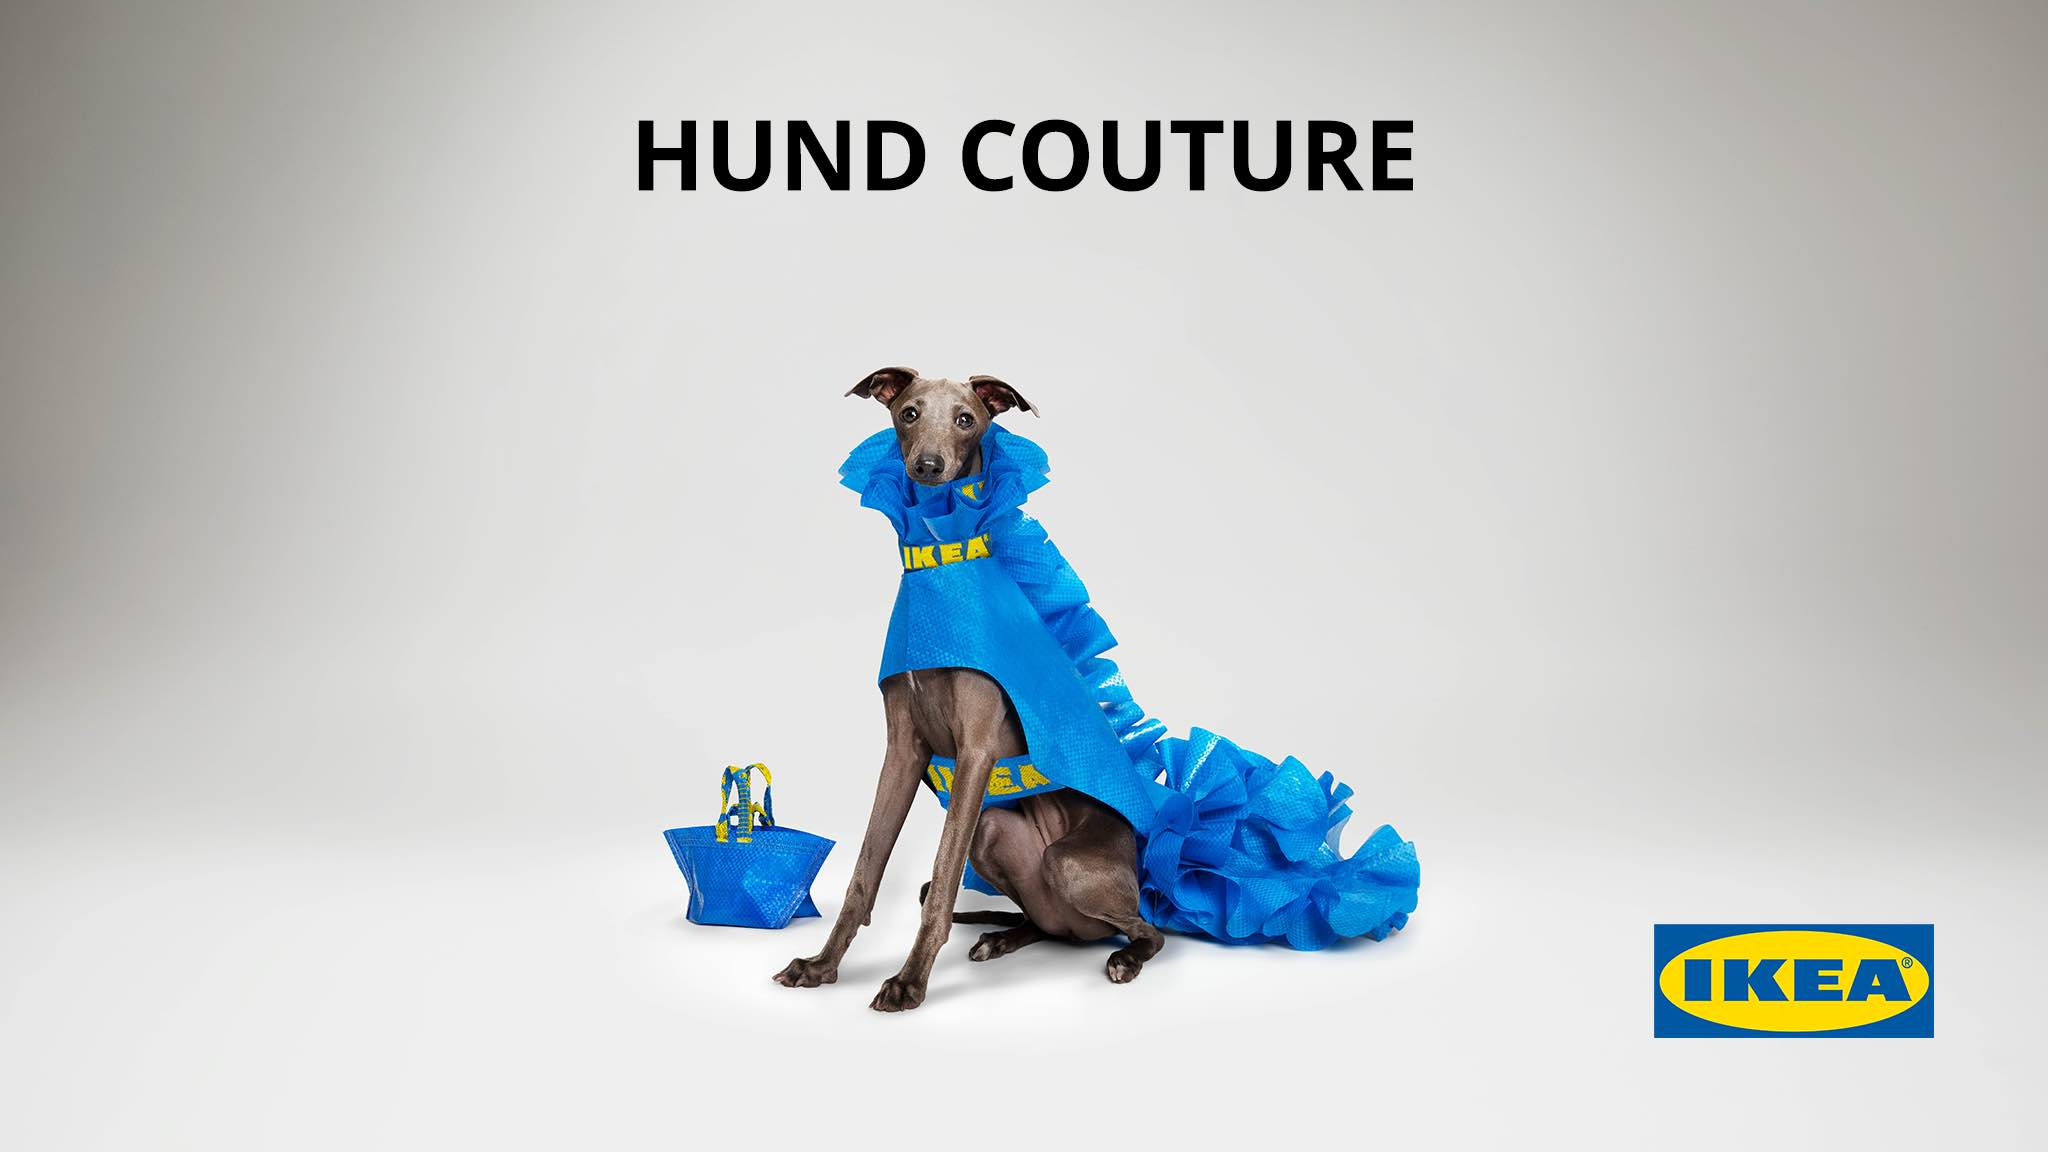 IKEA launches HUND COUTURE for dogs in April Fools' Day campaign